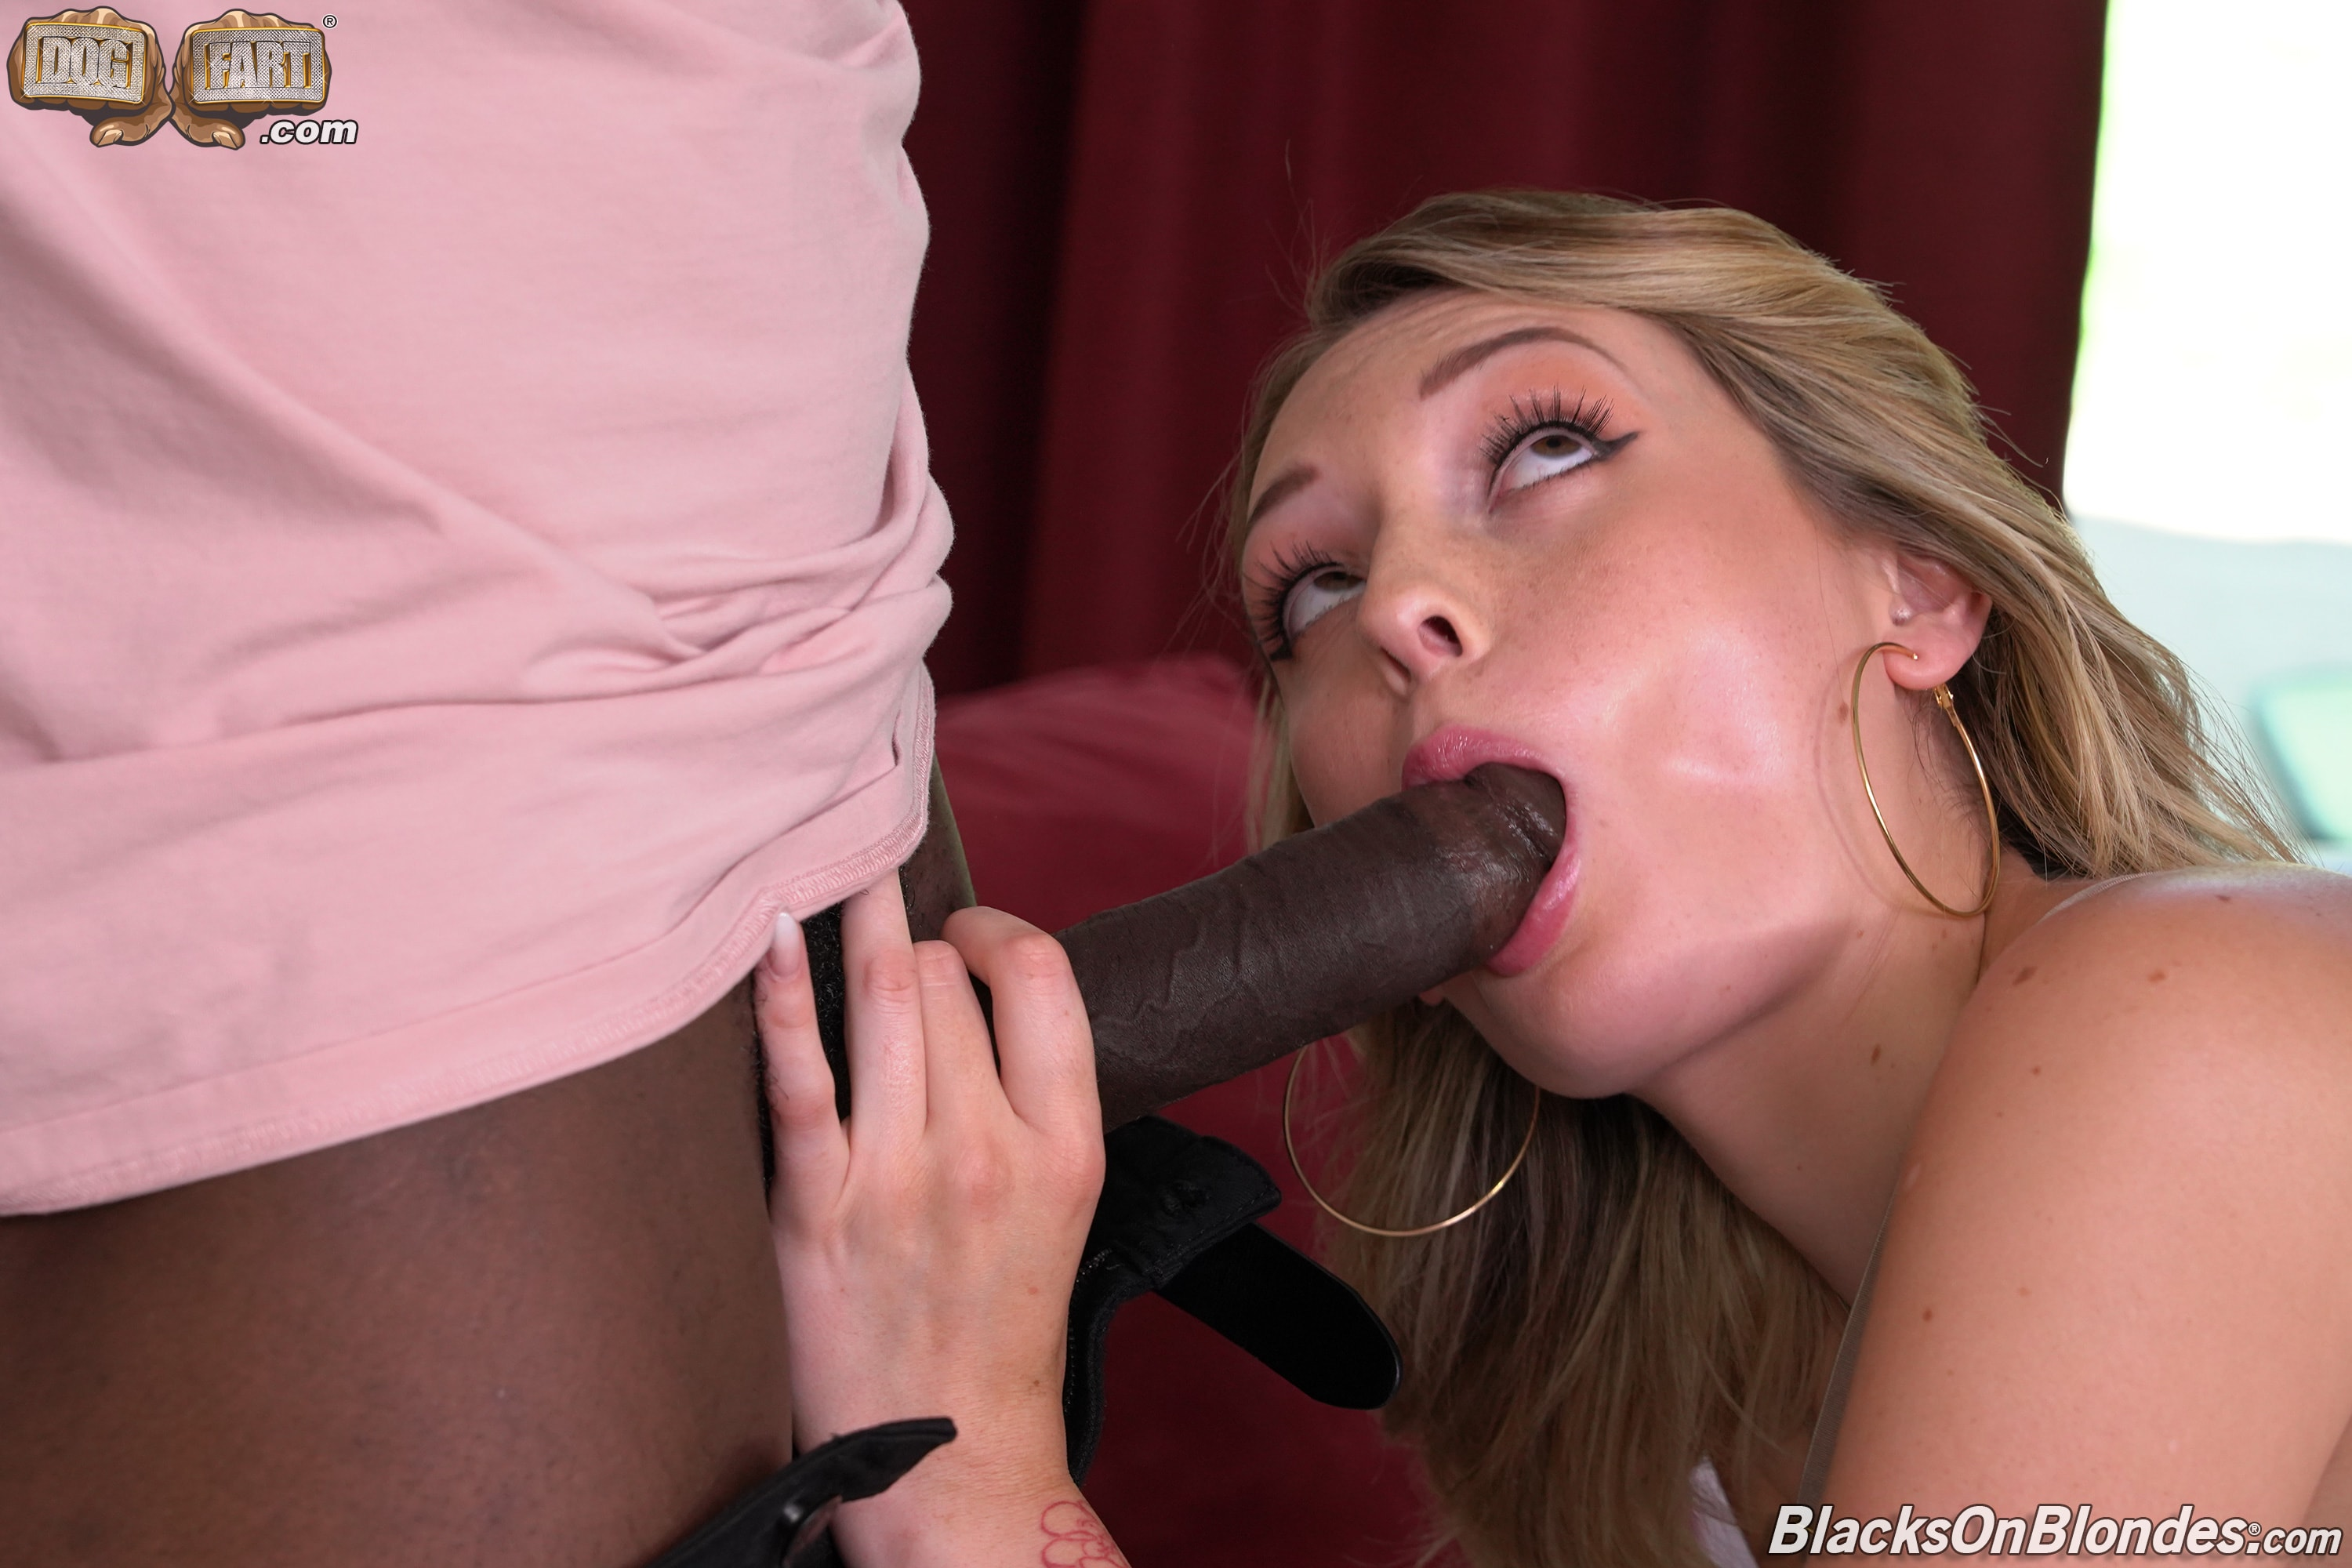 Charlotte Sins - Charlotte Sins - Blacks On Blondes - Scene 2 | Picture (10)